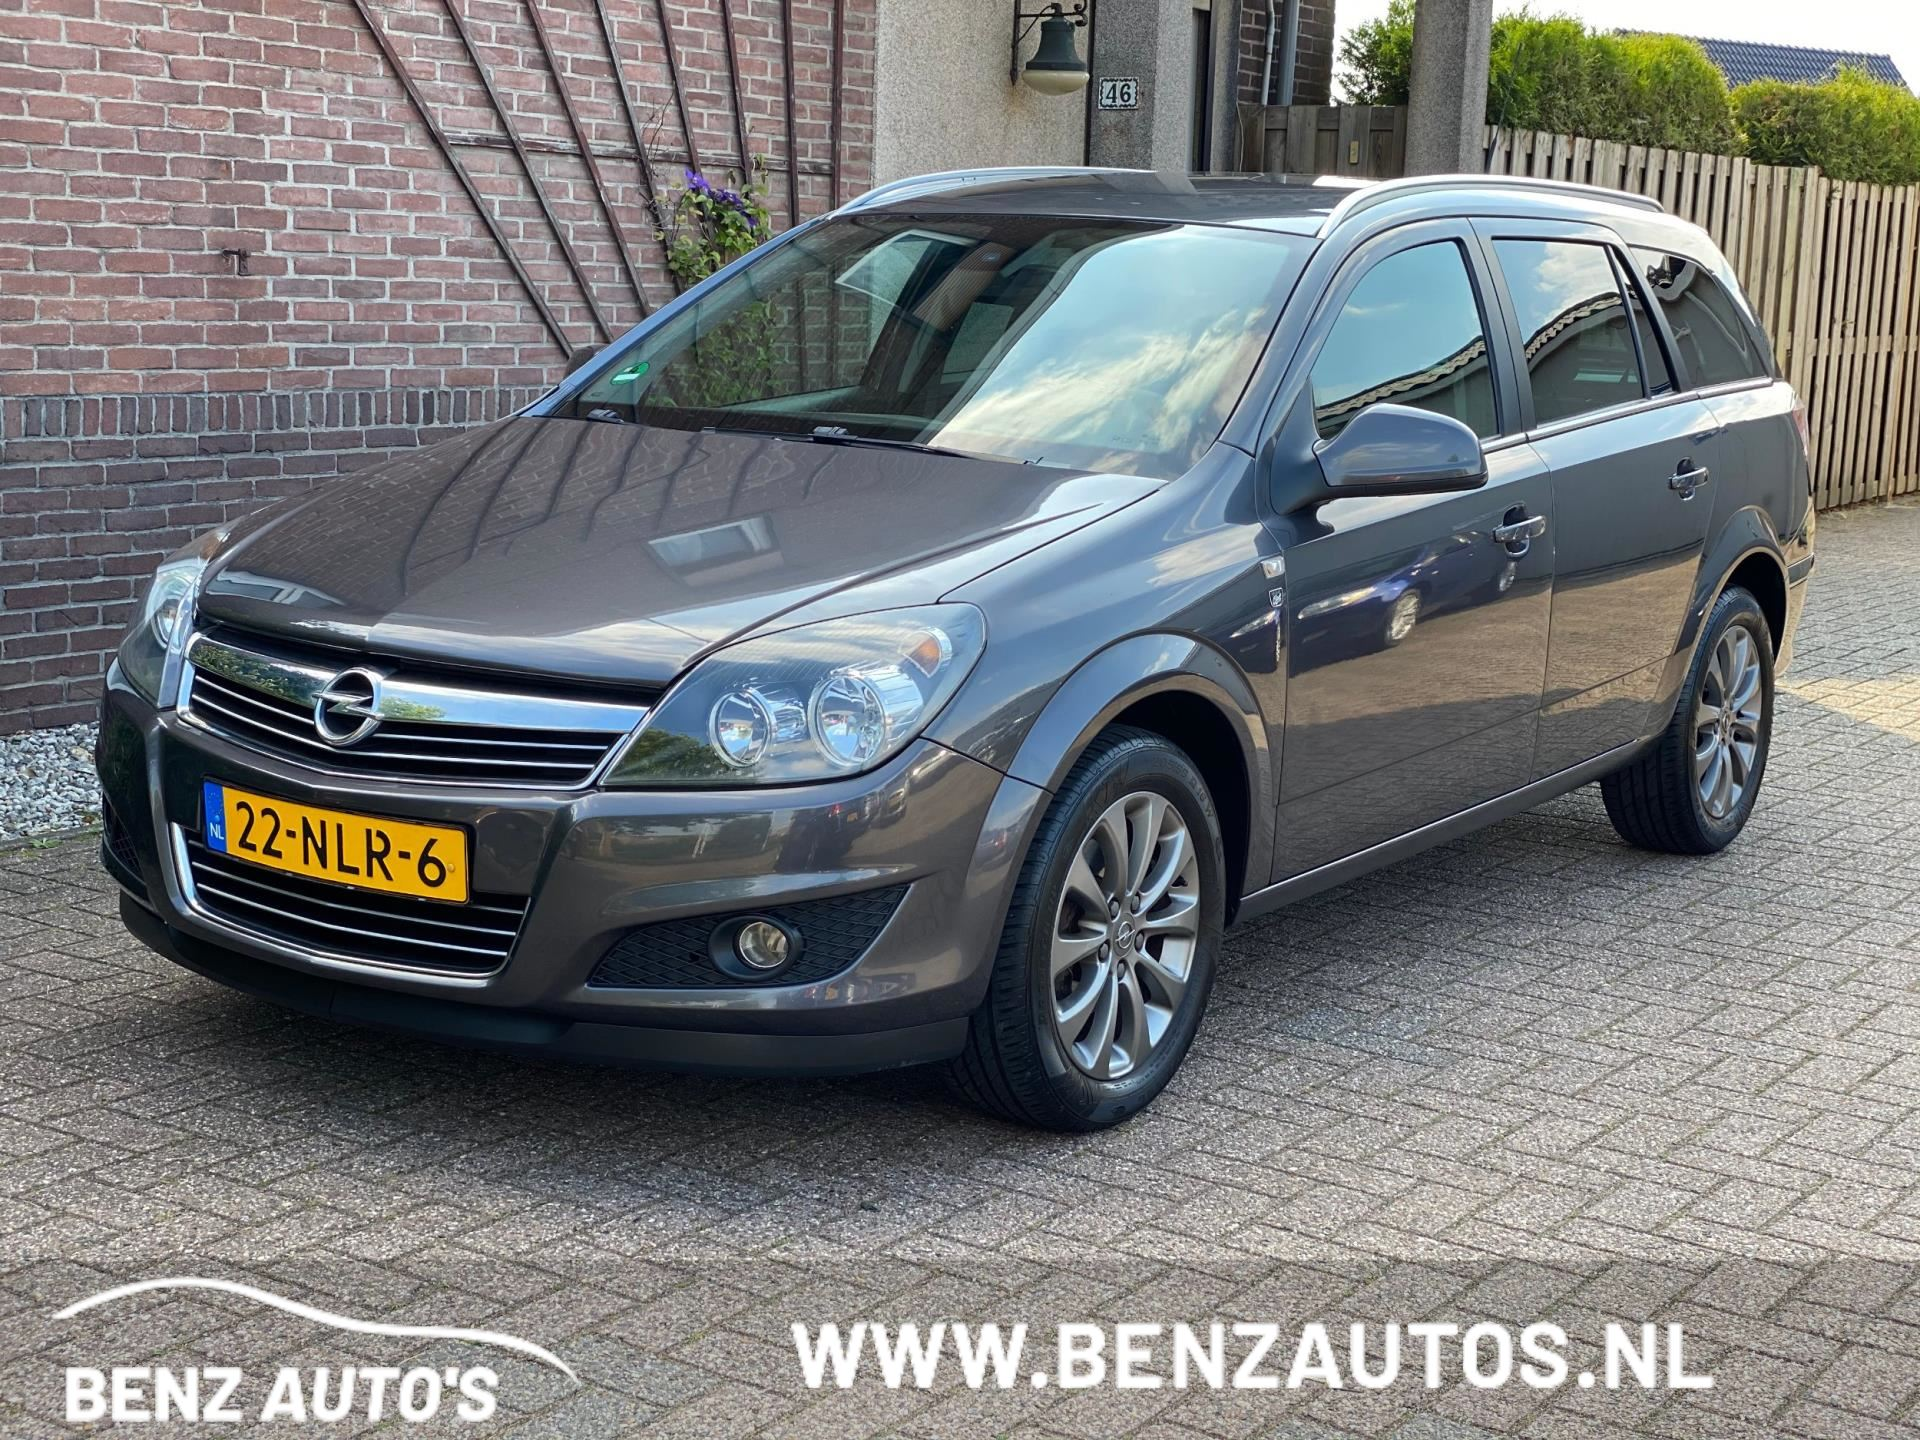 Opel Astra Wagon occasion - BENZ Auto's